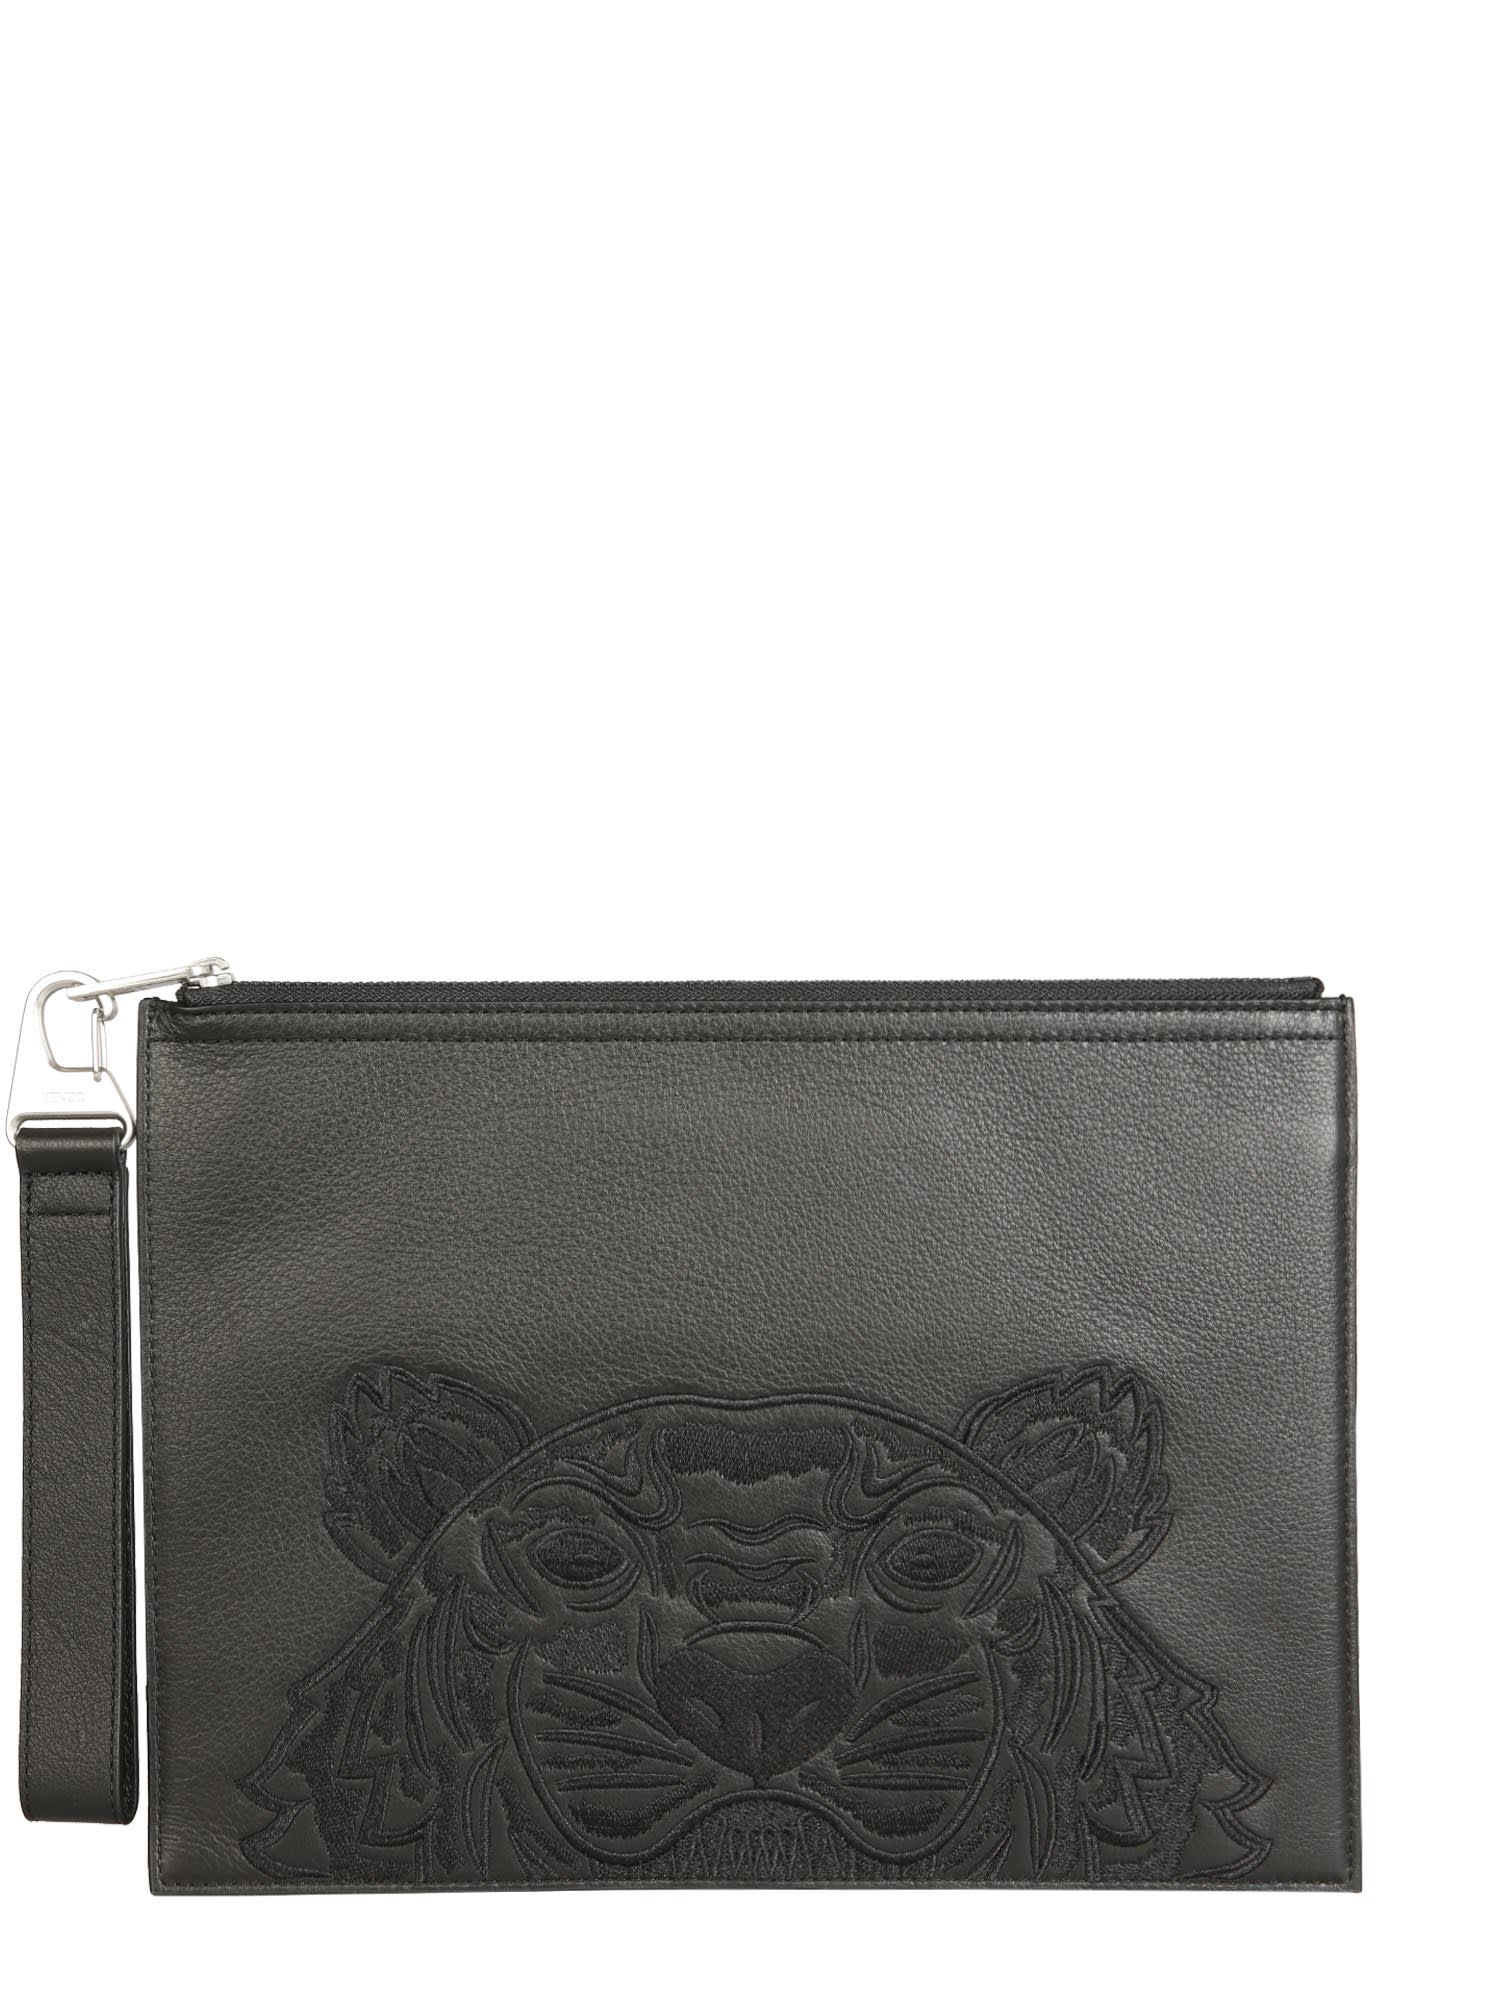 Kenzo Pouches LARGE POUCH WITH LOGO